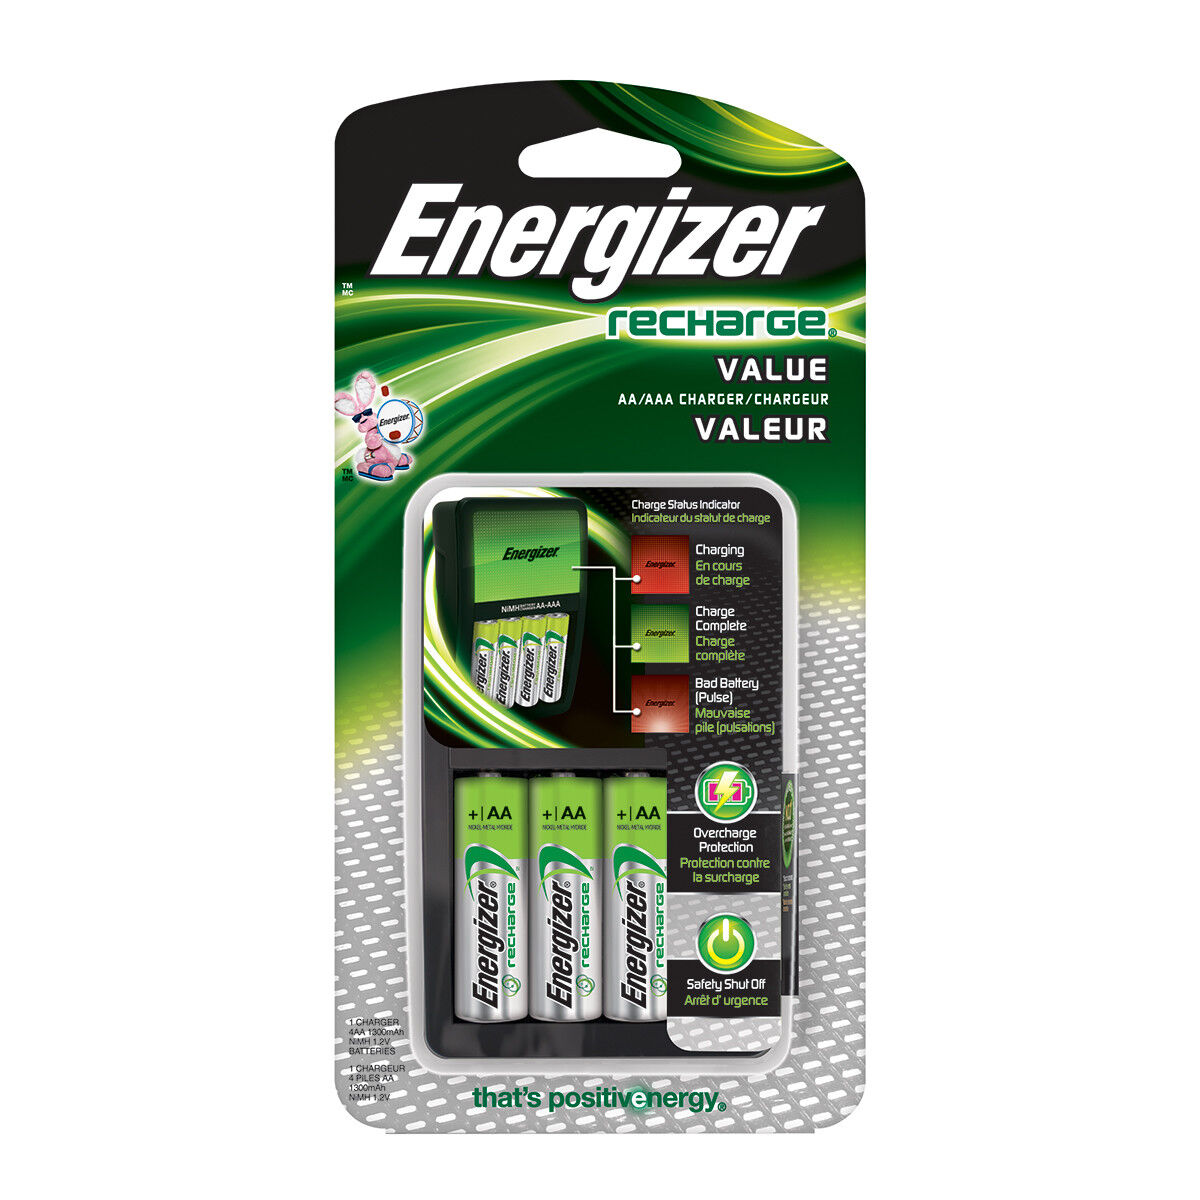 Energizer Value Charger Aa/Aaa W/4 Aa Ni-Mh Batt Incl